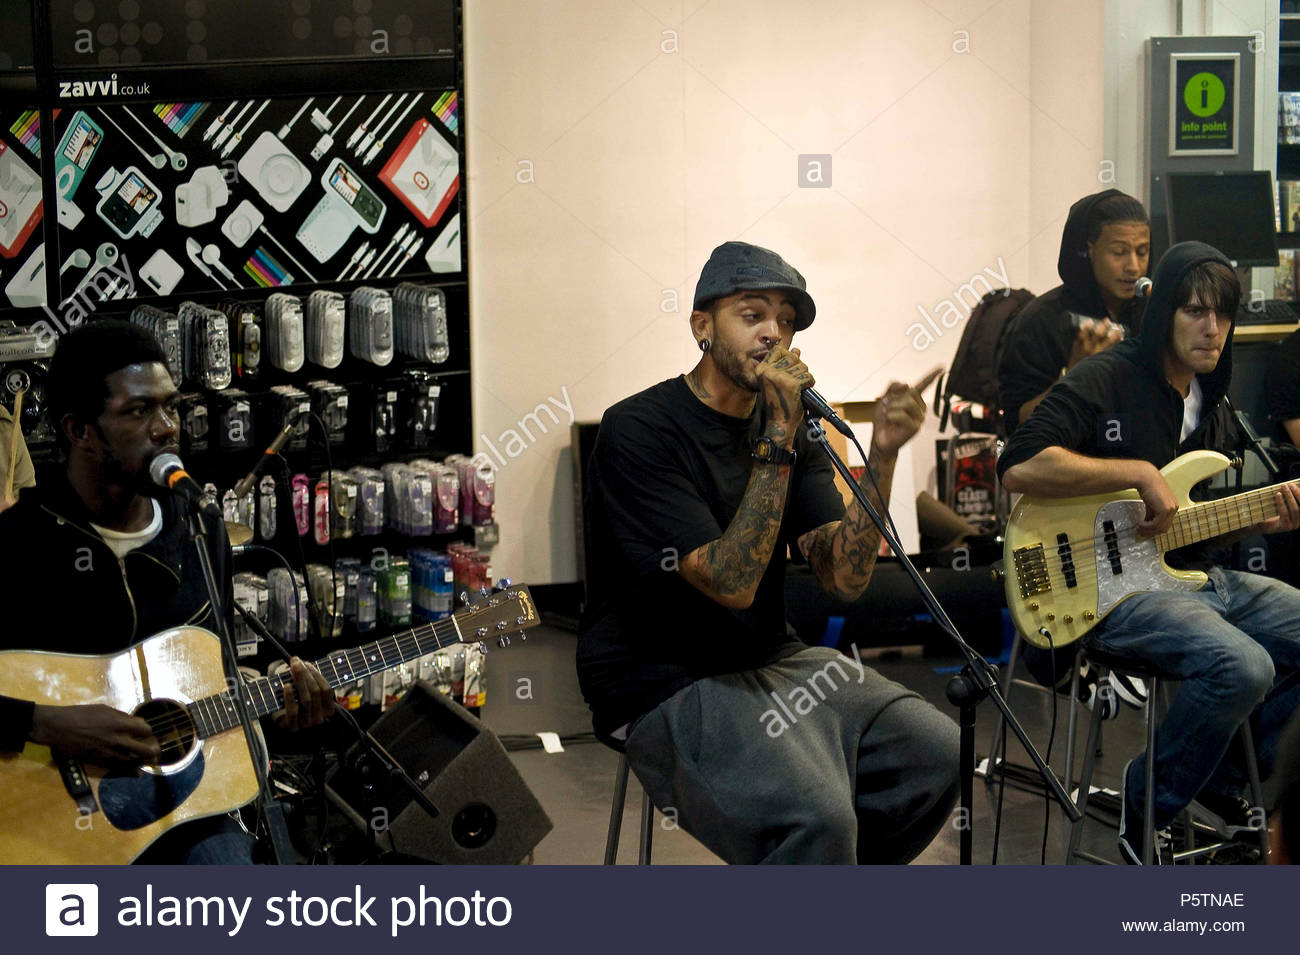 Travis Mccoy And Gym Class Heroes American Hip Hop Band Gym Class